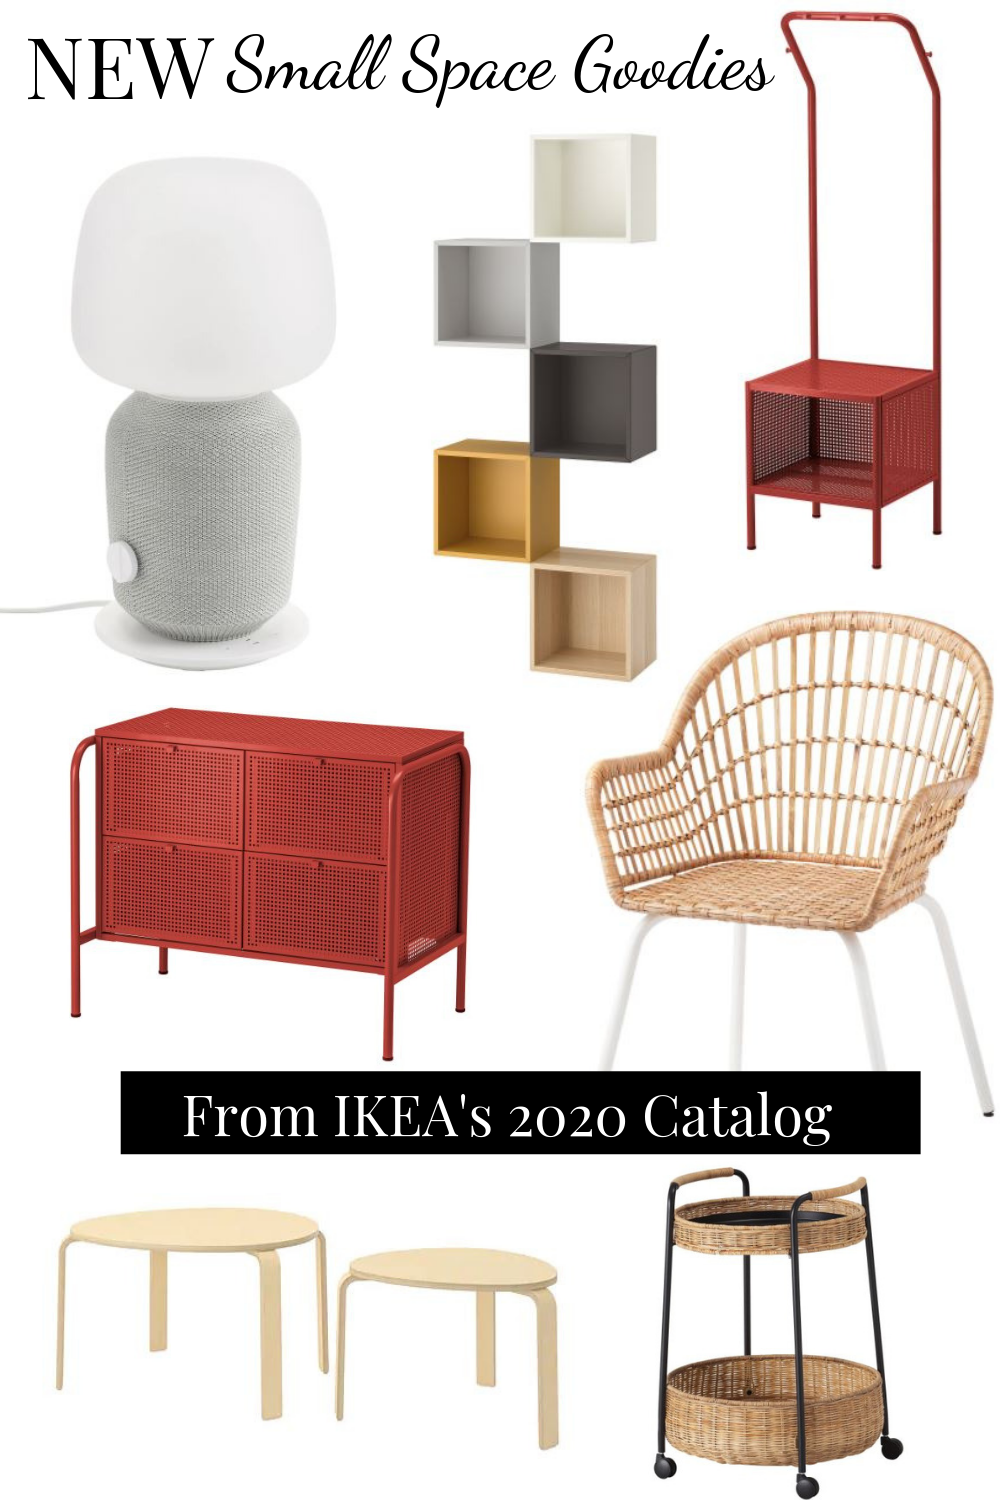 small space products from ikea's new 2020 collection